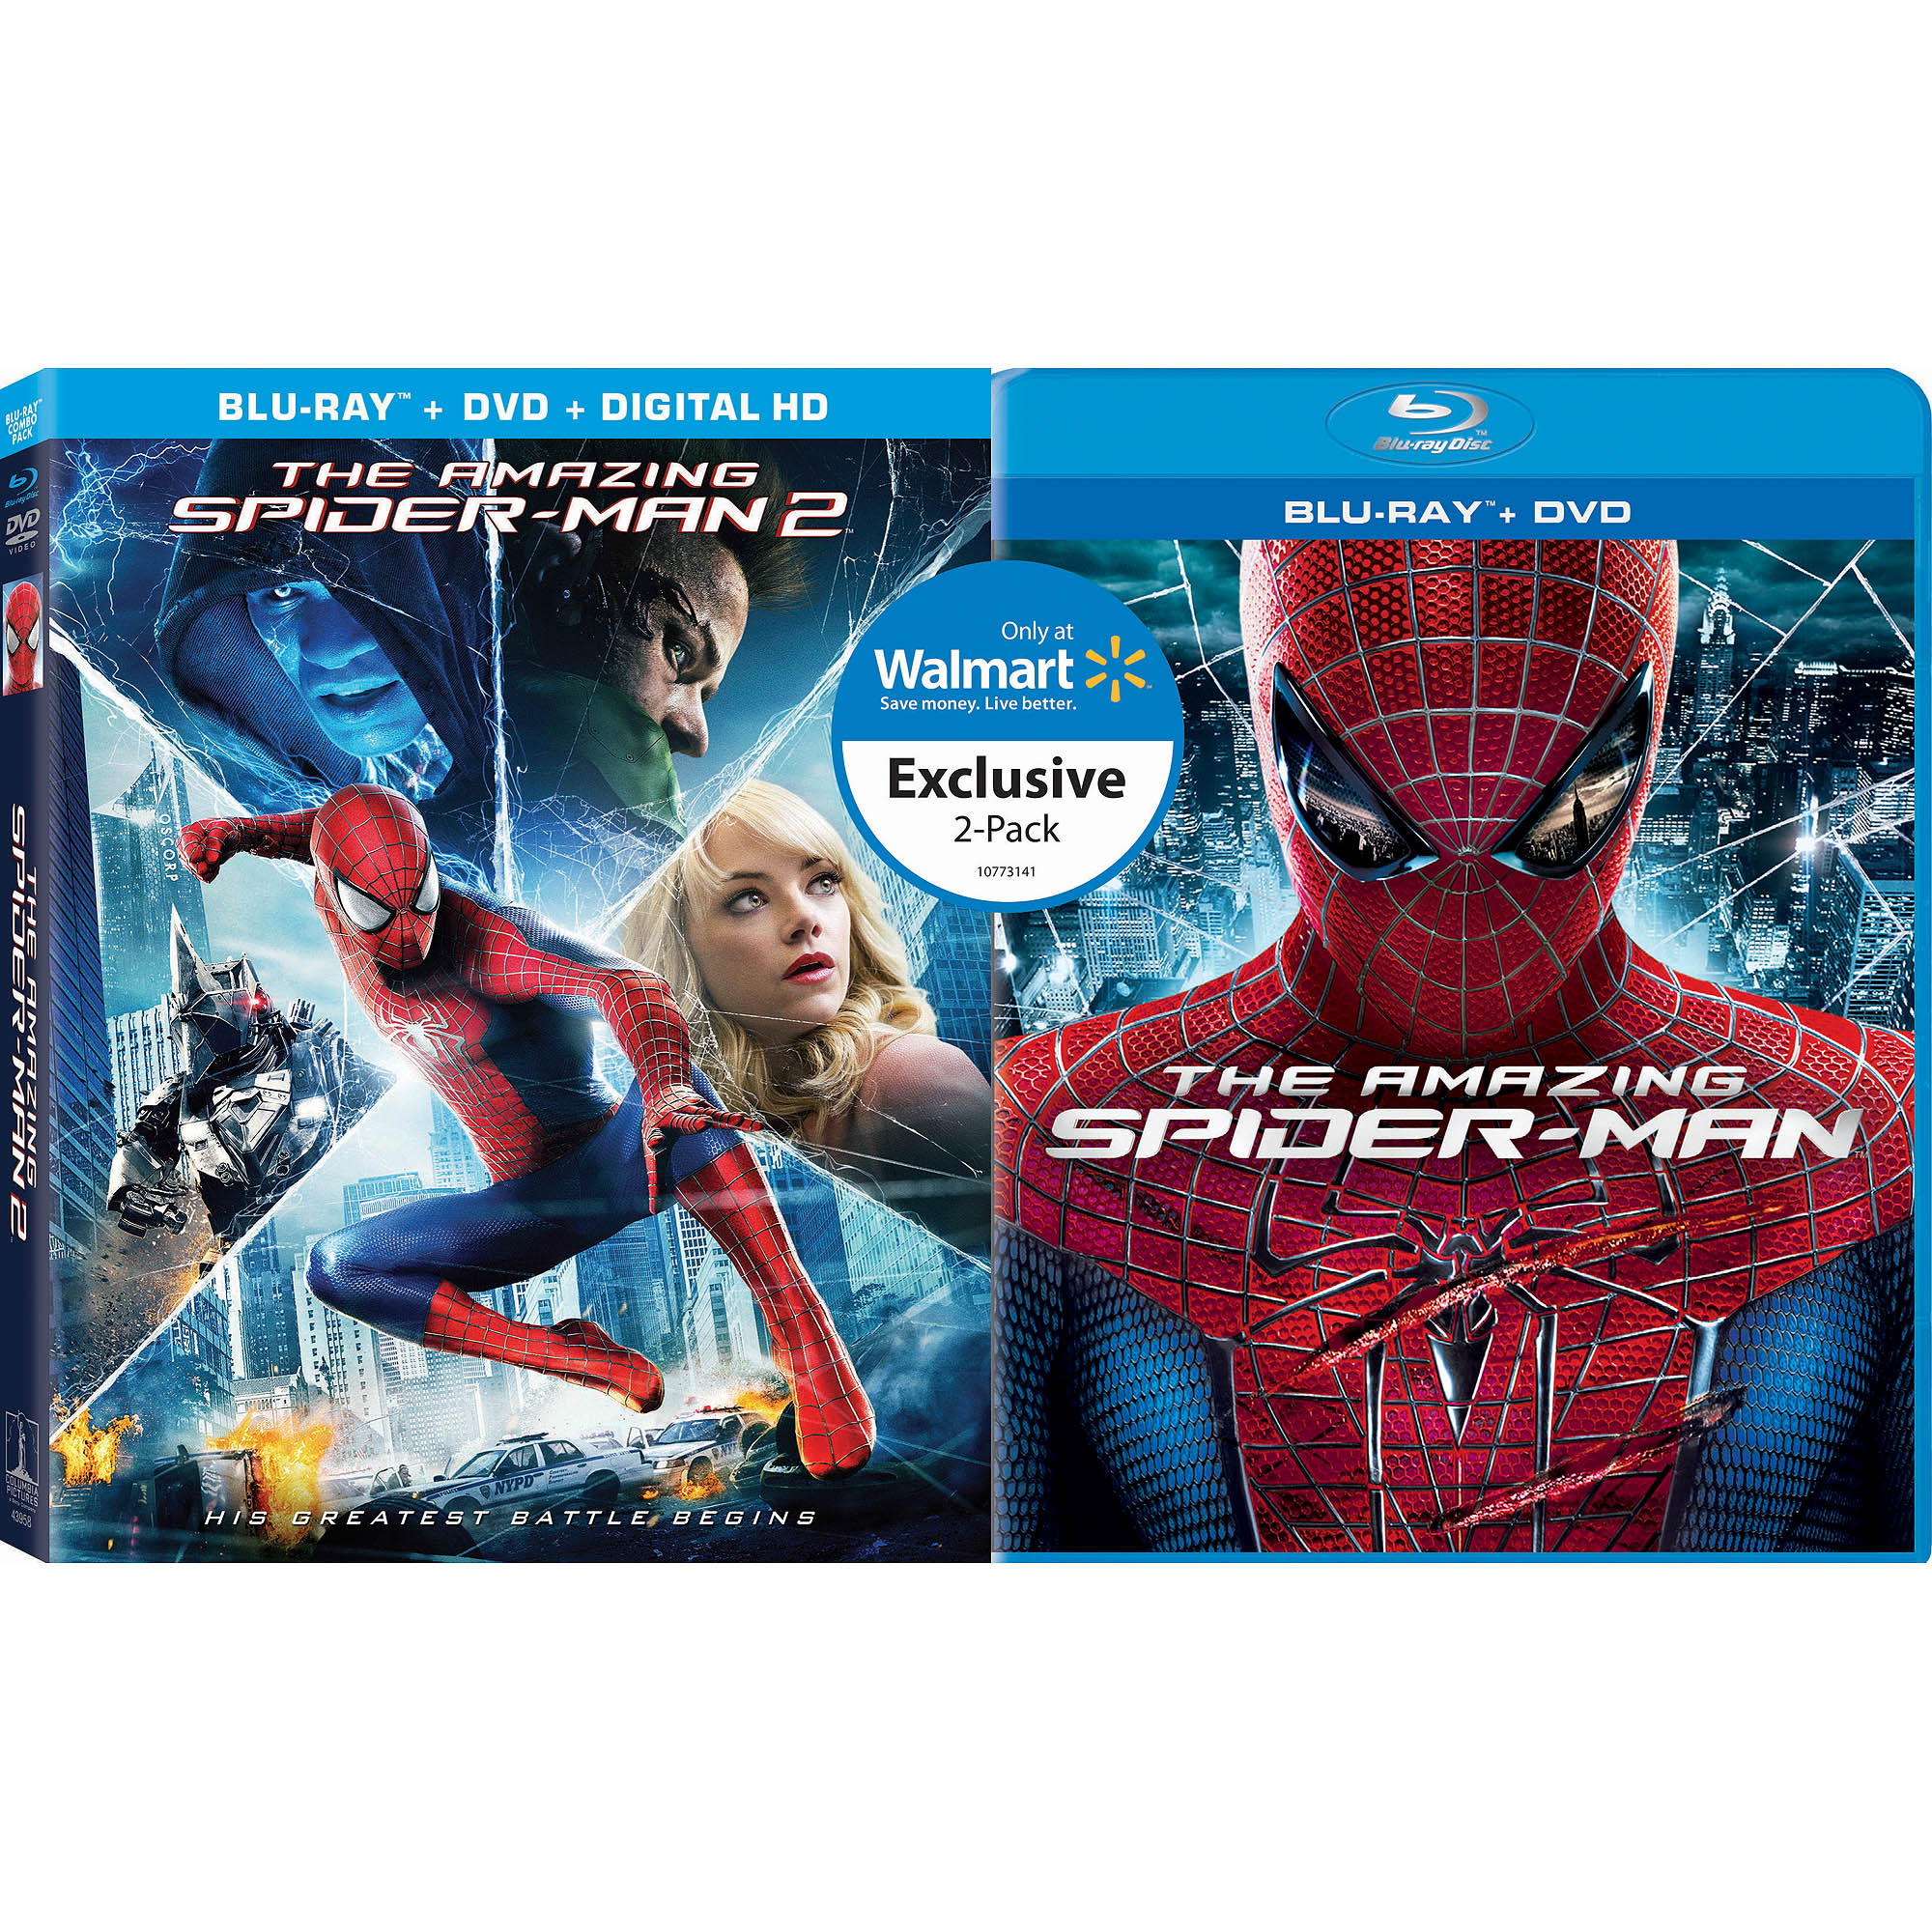 The Amazing Spider-man / The Amazing Spider-man 2 (Blu-ray + DVD + Digital HD) (Walmart Exclusive) (With INSTAWATCH) (Widescreen)